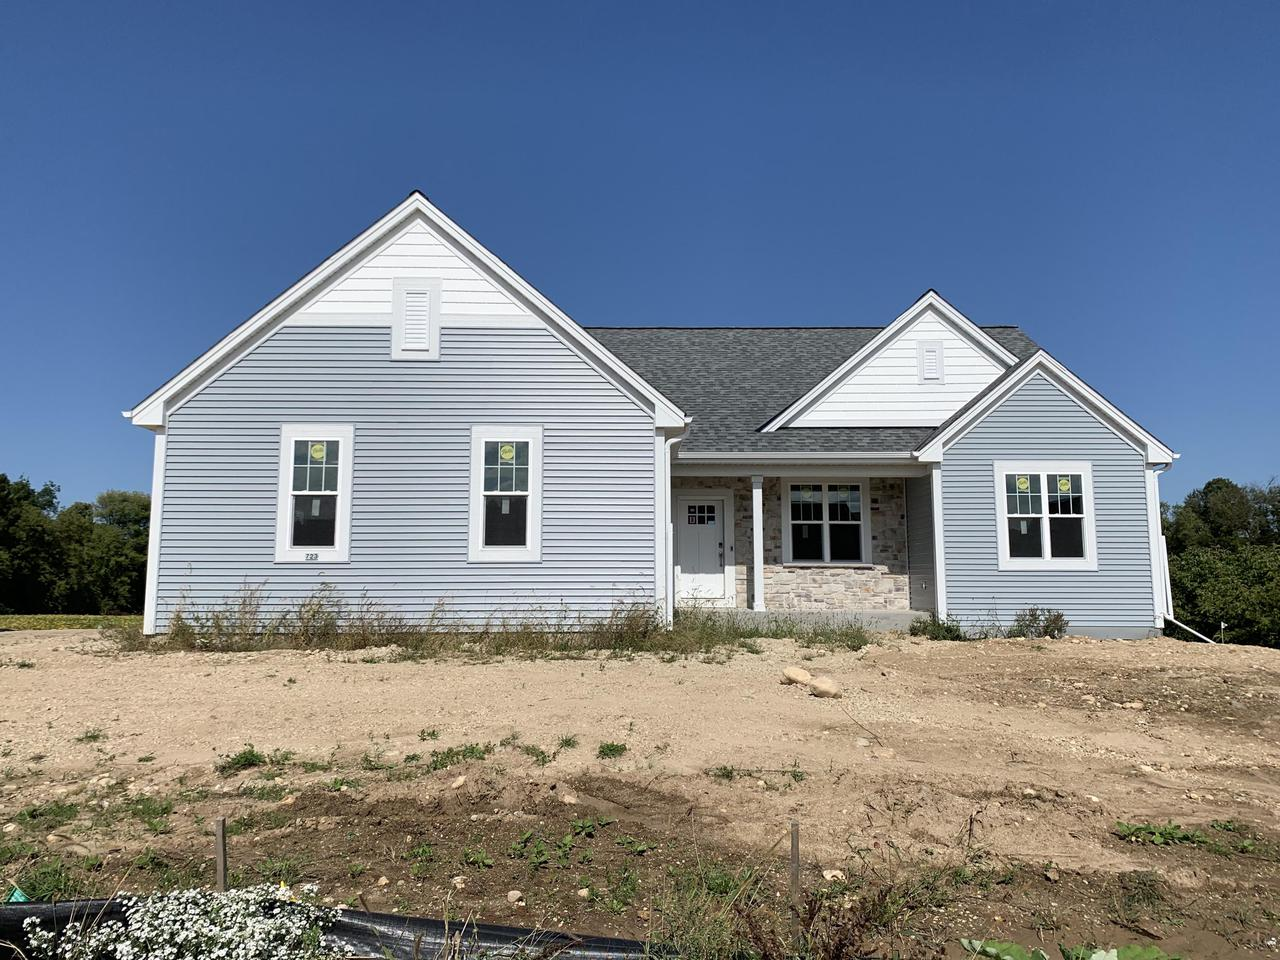 NEW CONSTRUCTION by Stepping Stone Homes. $2500 buyer closing cost credit OR credit towards a patio/deck for an accepted offer by 10/31! The Ellington model, offers a split BR design, beautiful dinette w/large window off the kitchen, & a huge basement w/full sized windows, perfect for adding another BR, or more living space.  Open concept with lots of upgrades like soft close dovetail cabinetry, quartz/marble counter tops, double sinks in the bathrooms, upgraded flooring, 8 ft GA doors & more! First FL laundry, electric fireplace, this home has it all. And don't forget the Smart Home Technology including integrated lighting, door locks, ecobee smart thermostat, video doorbell, Lift Master garage door & Samsung Connected Touch Screen Family Hub Refrigerator. Driveway & seeded lawn included.